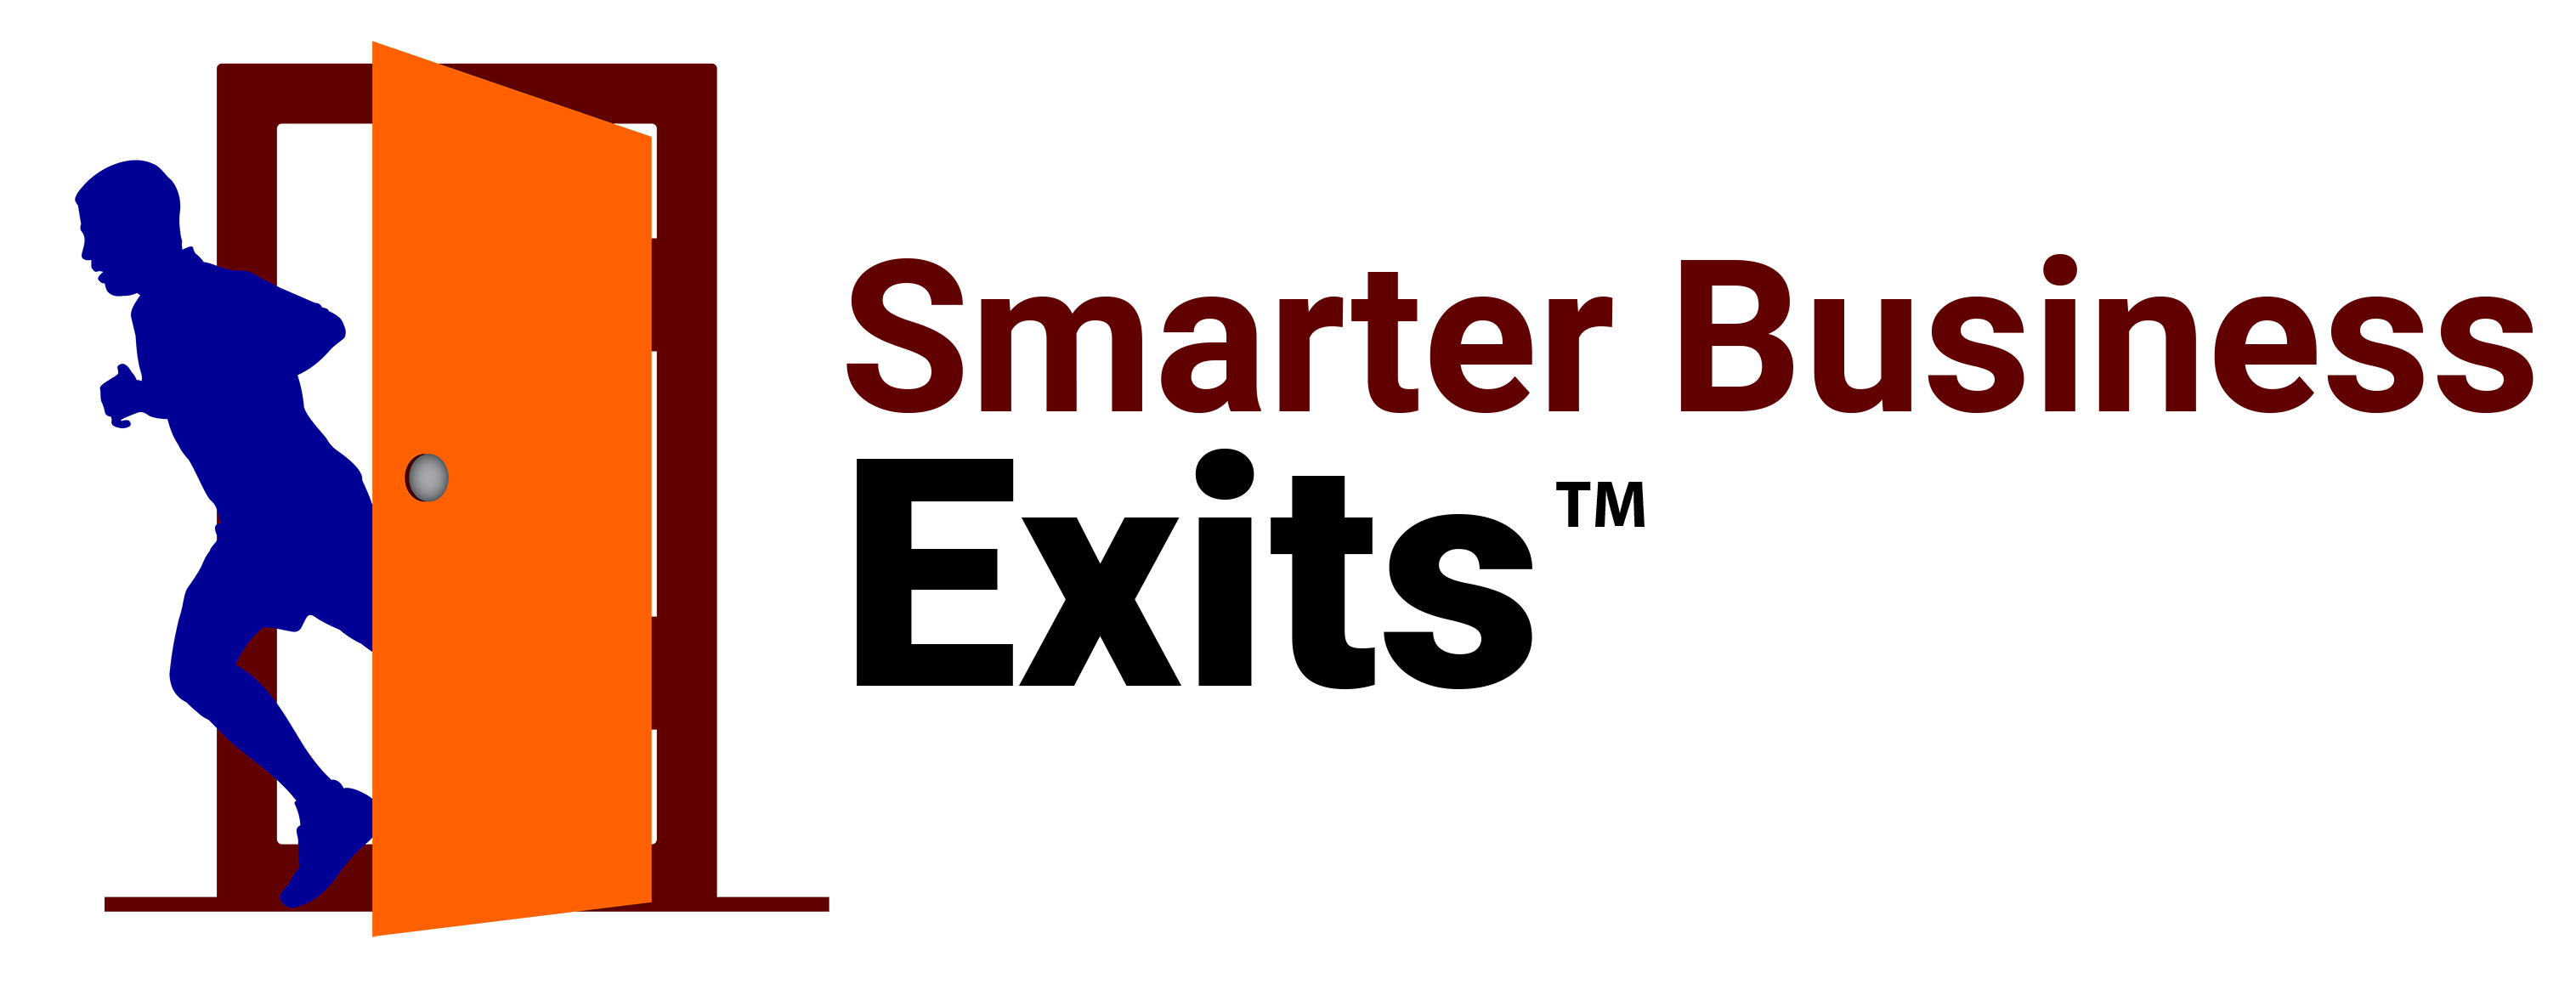 Logo for smarter business exits, corporate divorce, buyouts, redemption, joint sale of private business, succession planning.